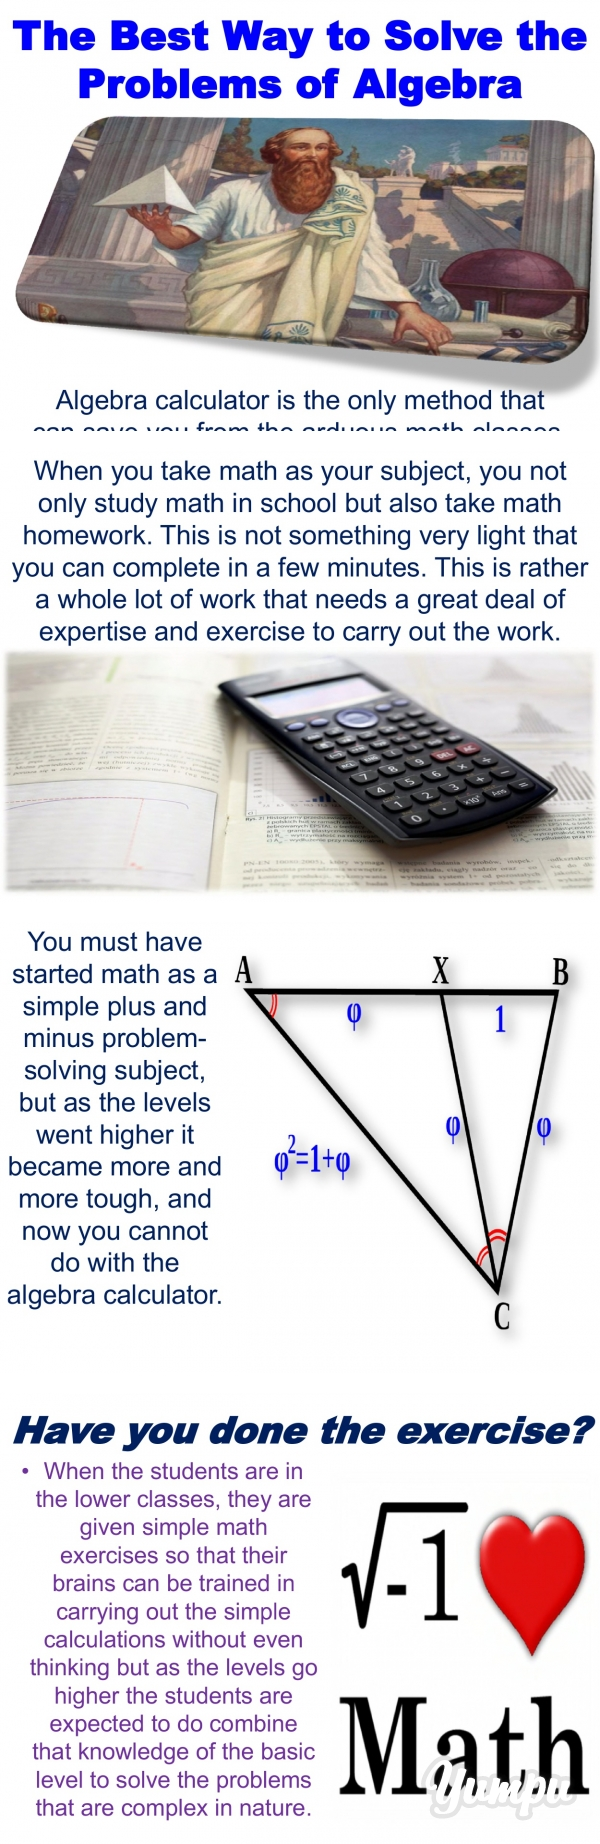 The Best Way to Solve the Problems of Algebra - Magazine with 17 ...